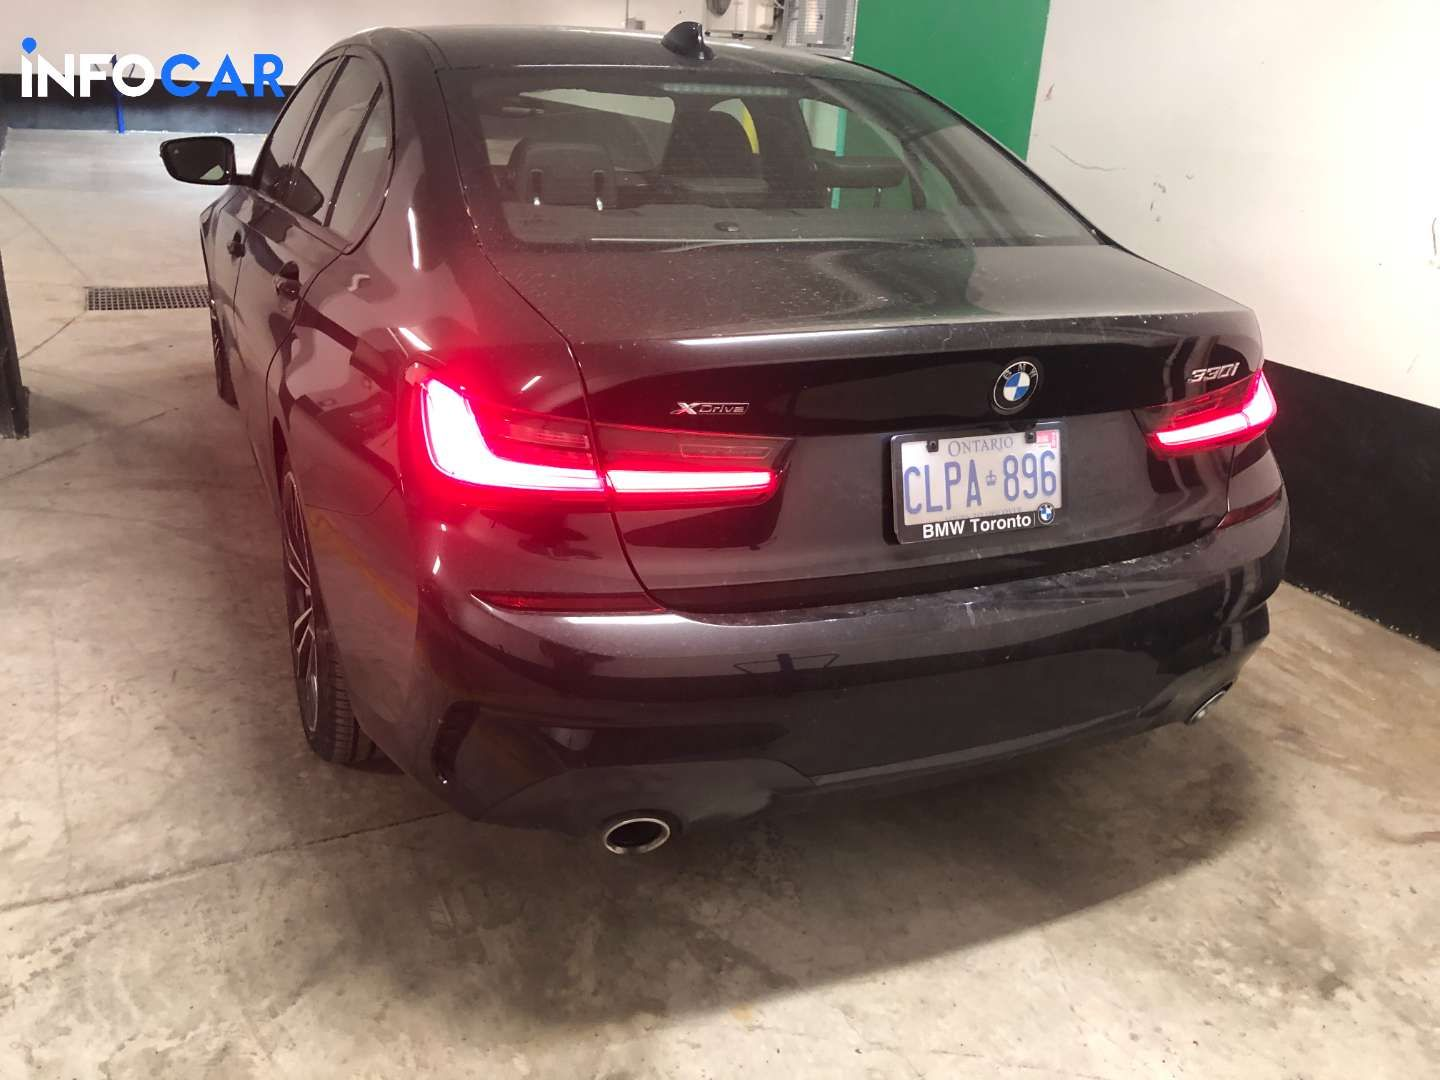 2020 BMW 3-Series 330 - INFOCAR - Toronto's Most Comprehensive New and Used Auto Trading Platform